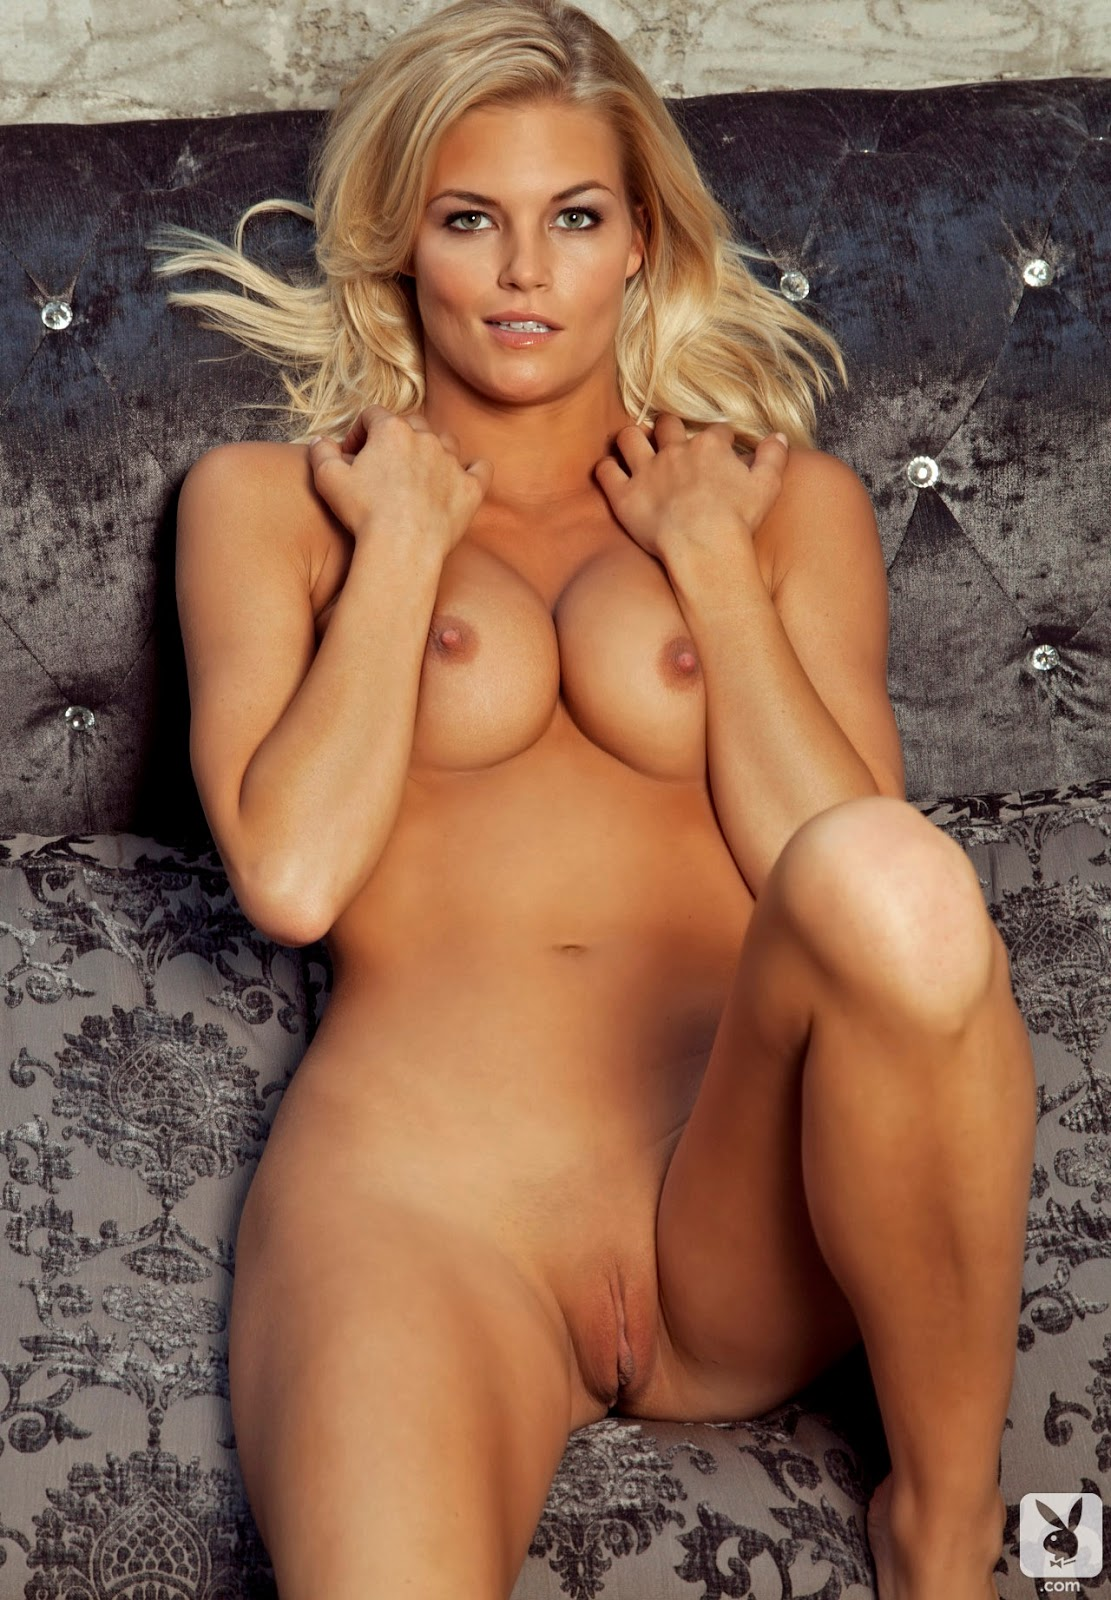 Excellent Playmate nude playmate rather valuable